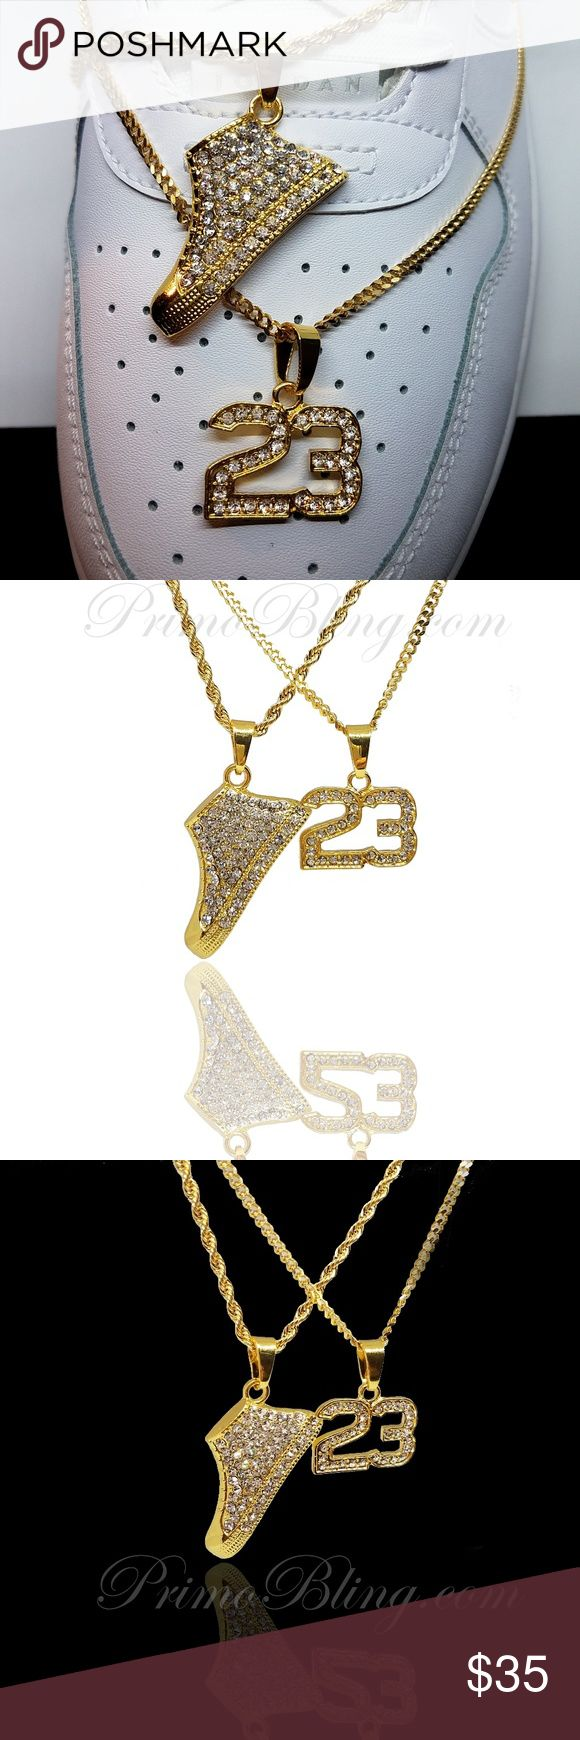 """14k Gold Plated Hip Hop Jordan Necklace Bling Set This Set is a must have for any Jordan enthusiast! Iced Out completely these pendants are made of jewelers brass and 2x Plated in 14k Gold Plating!  14k Gold Plated Shoe Retro Pendant #23 Pendant  24"""" Cuban Link Chain 24"""" Rope Chain (4 pcs Set) primobling Accessories Jewelry"""